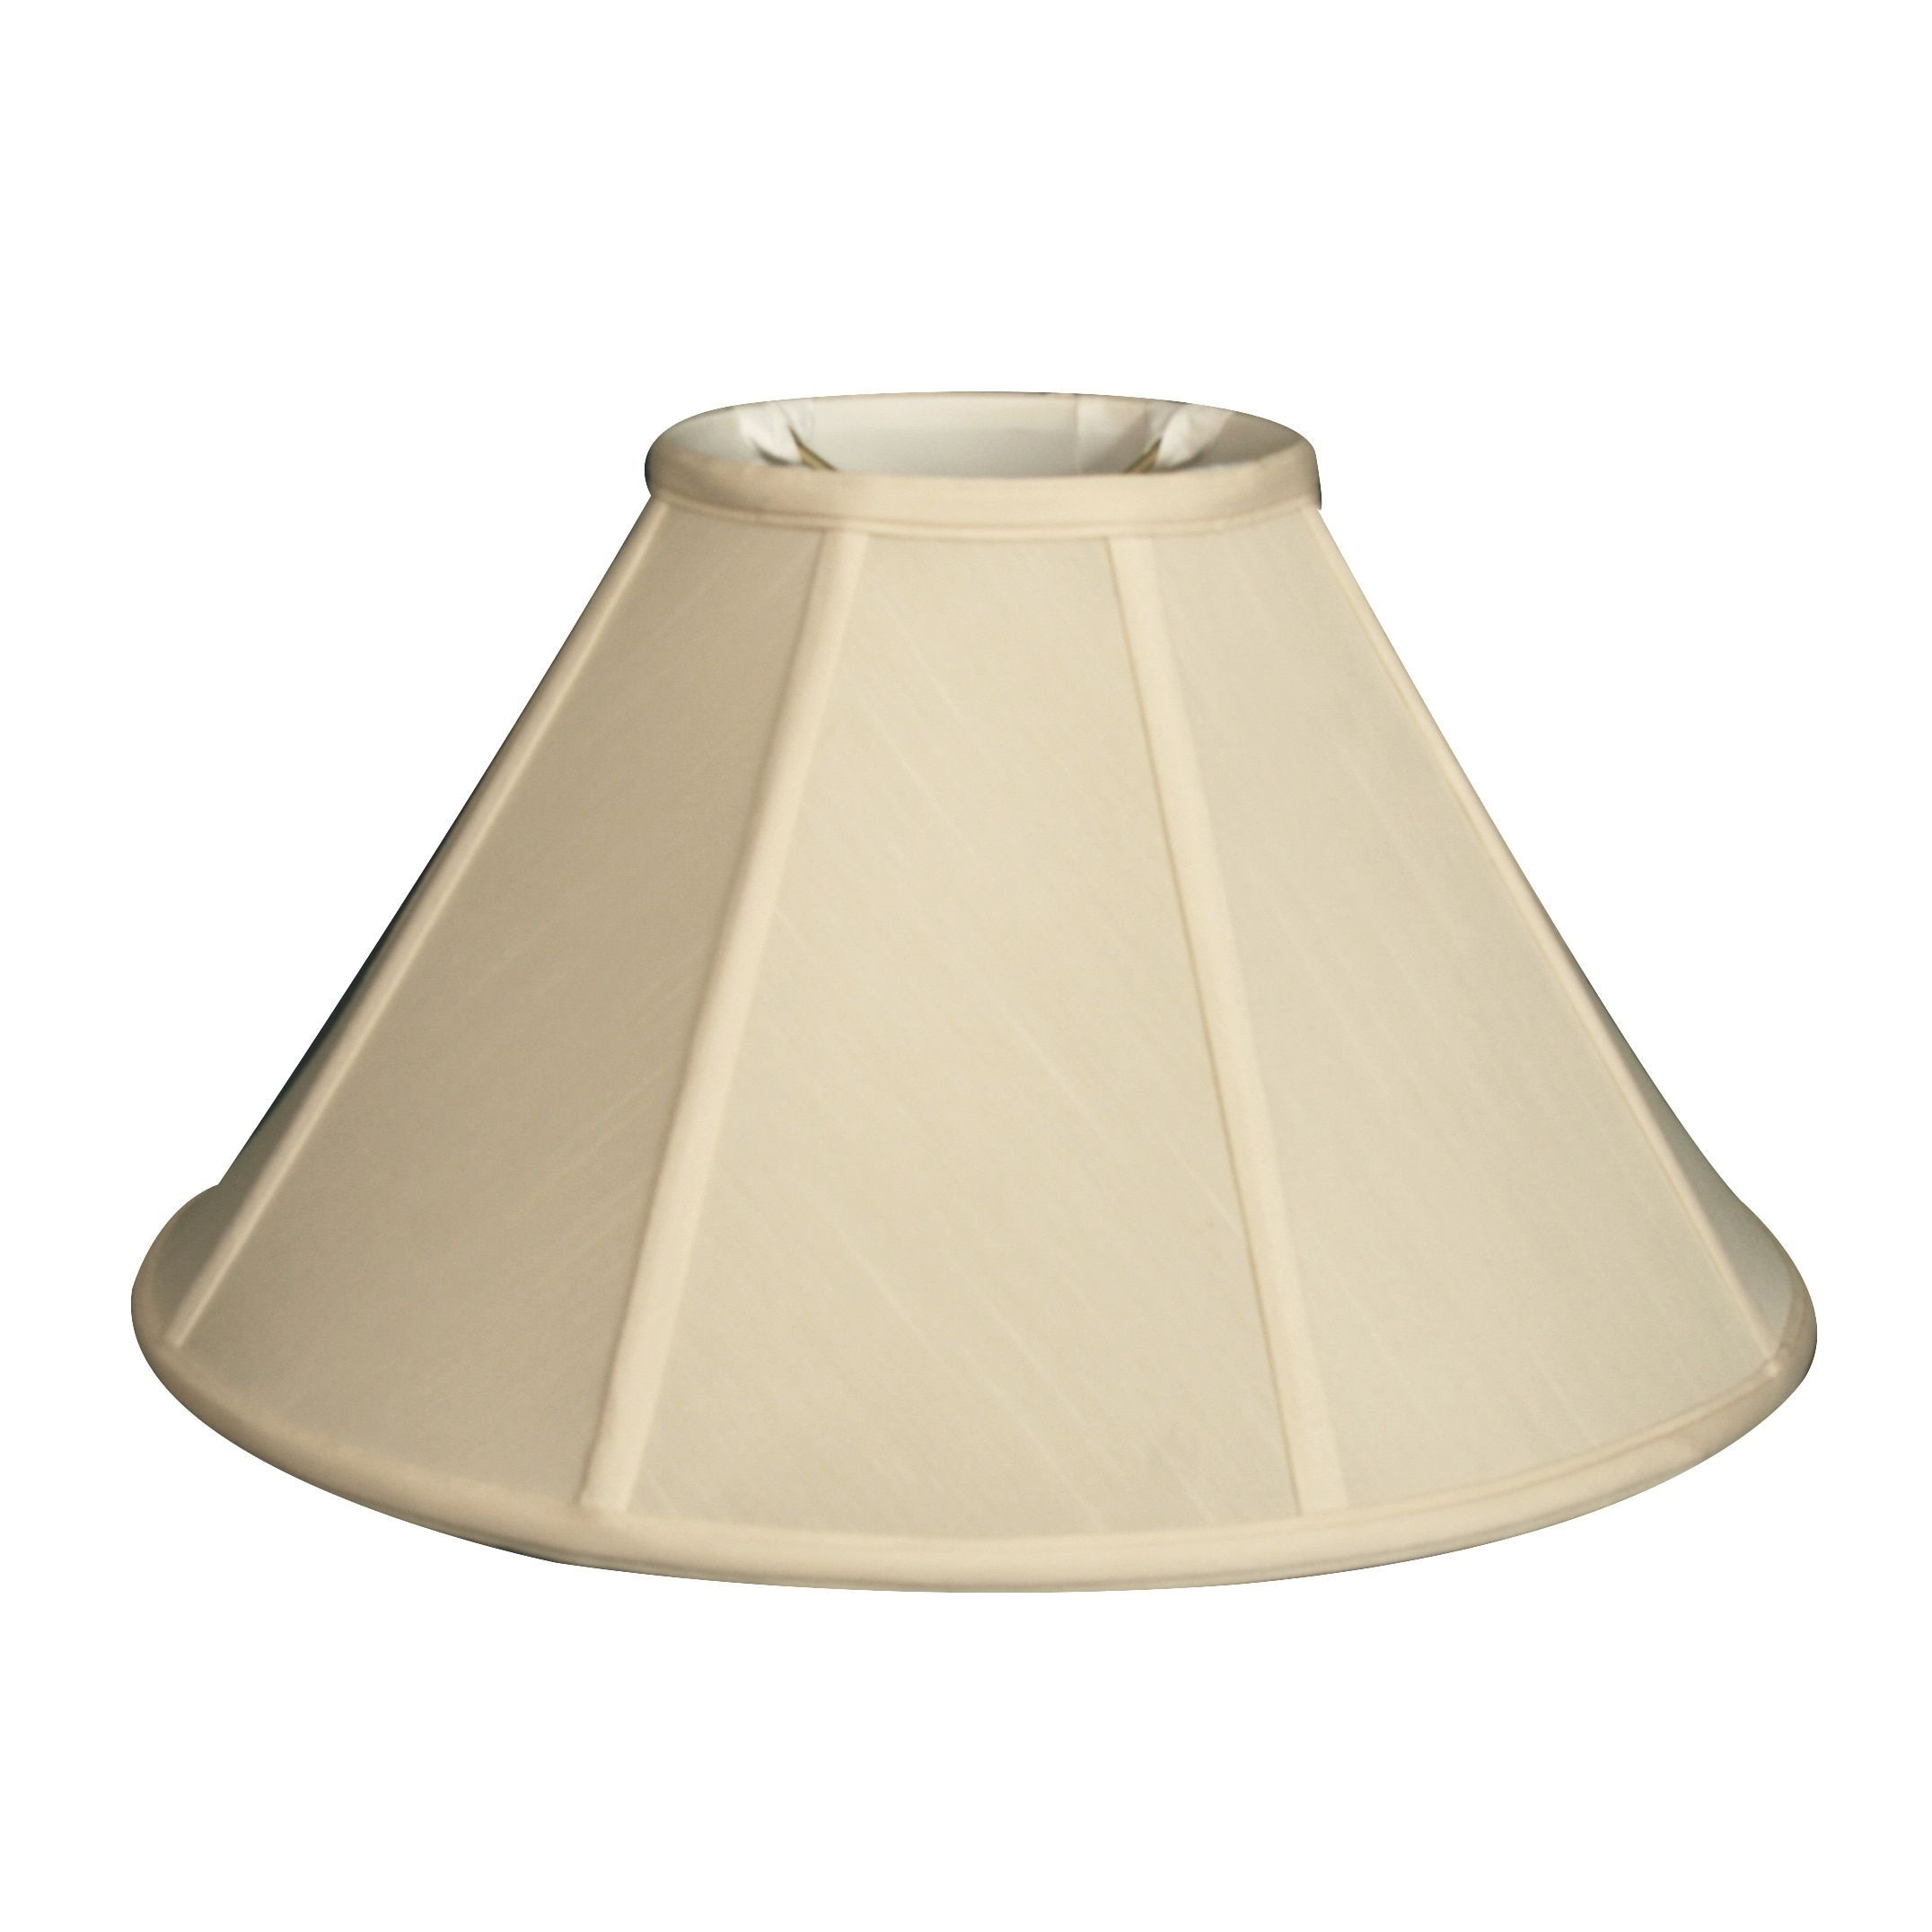 Royal Designs Empire Lamp Shade Eggshell 4 5 X 12 X 7 5 Color Beige Off White Brass Products Light Shades Shades Royal Design